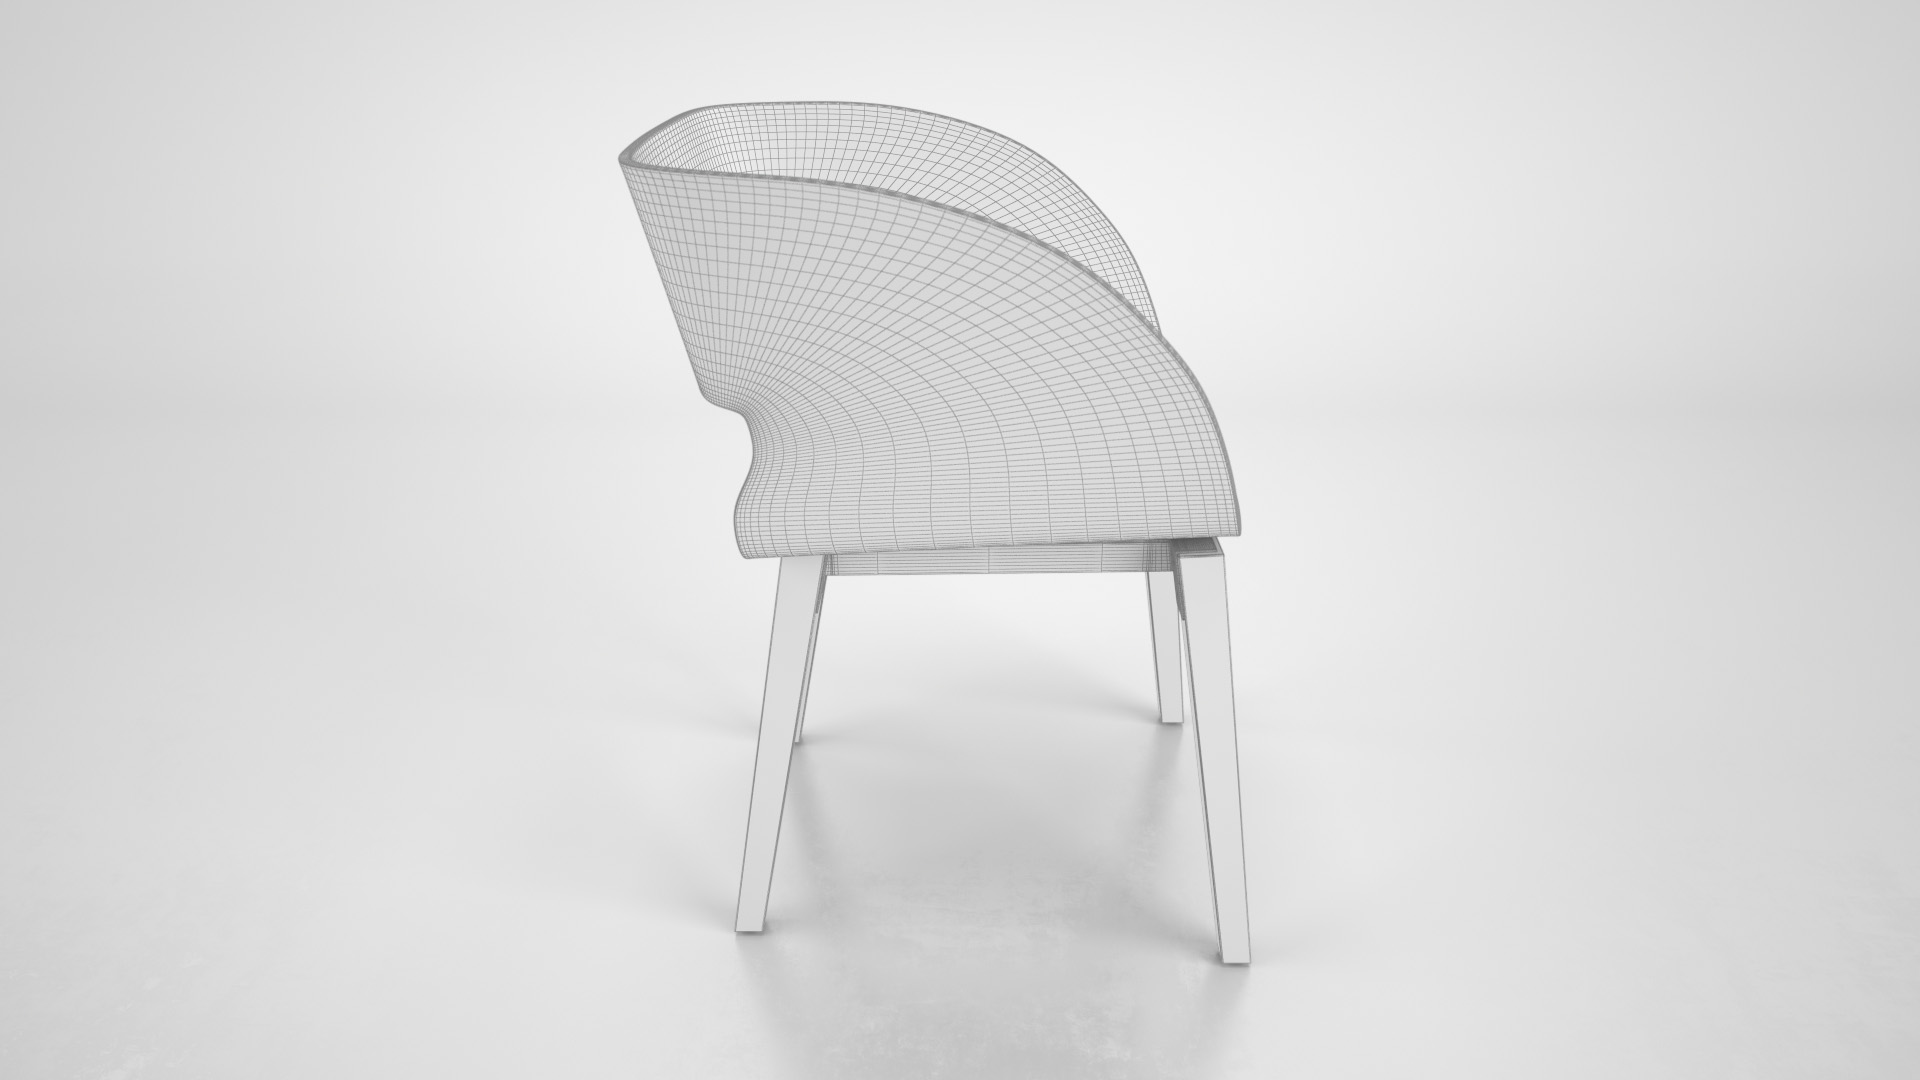 Tribu_Vintage_Chair_TeakLegs_WhiteSet_01_wire_0002